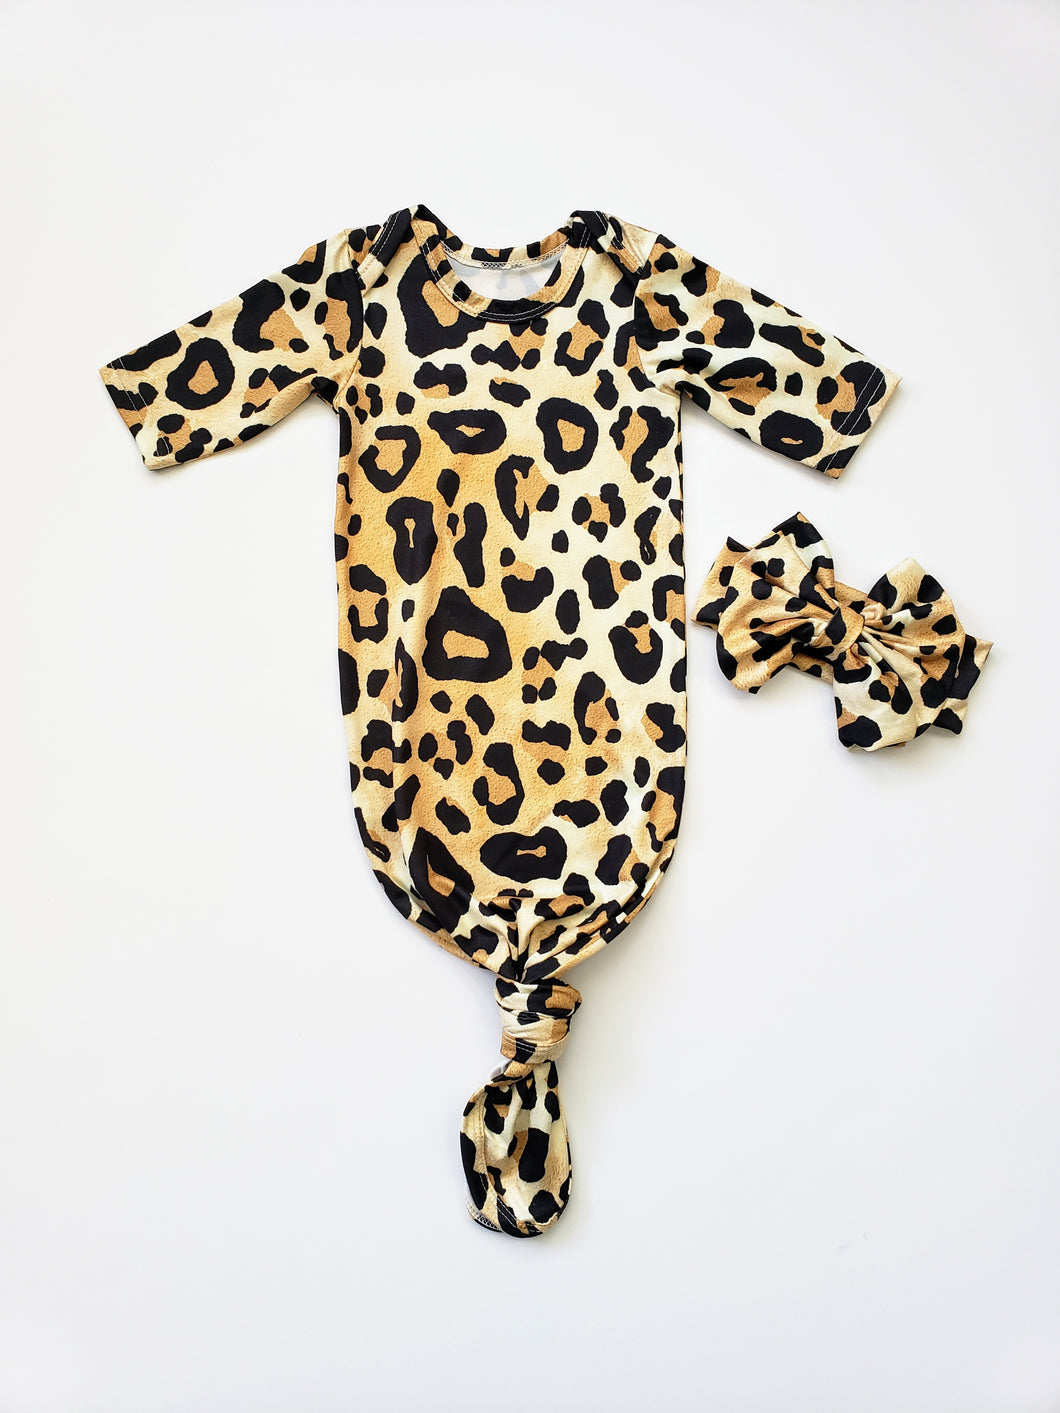 Leopard Newborn Gown Coming Home Outfit Girl - Adassa Rose